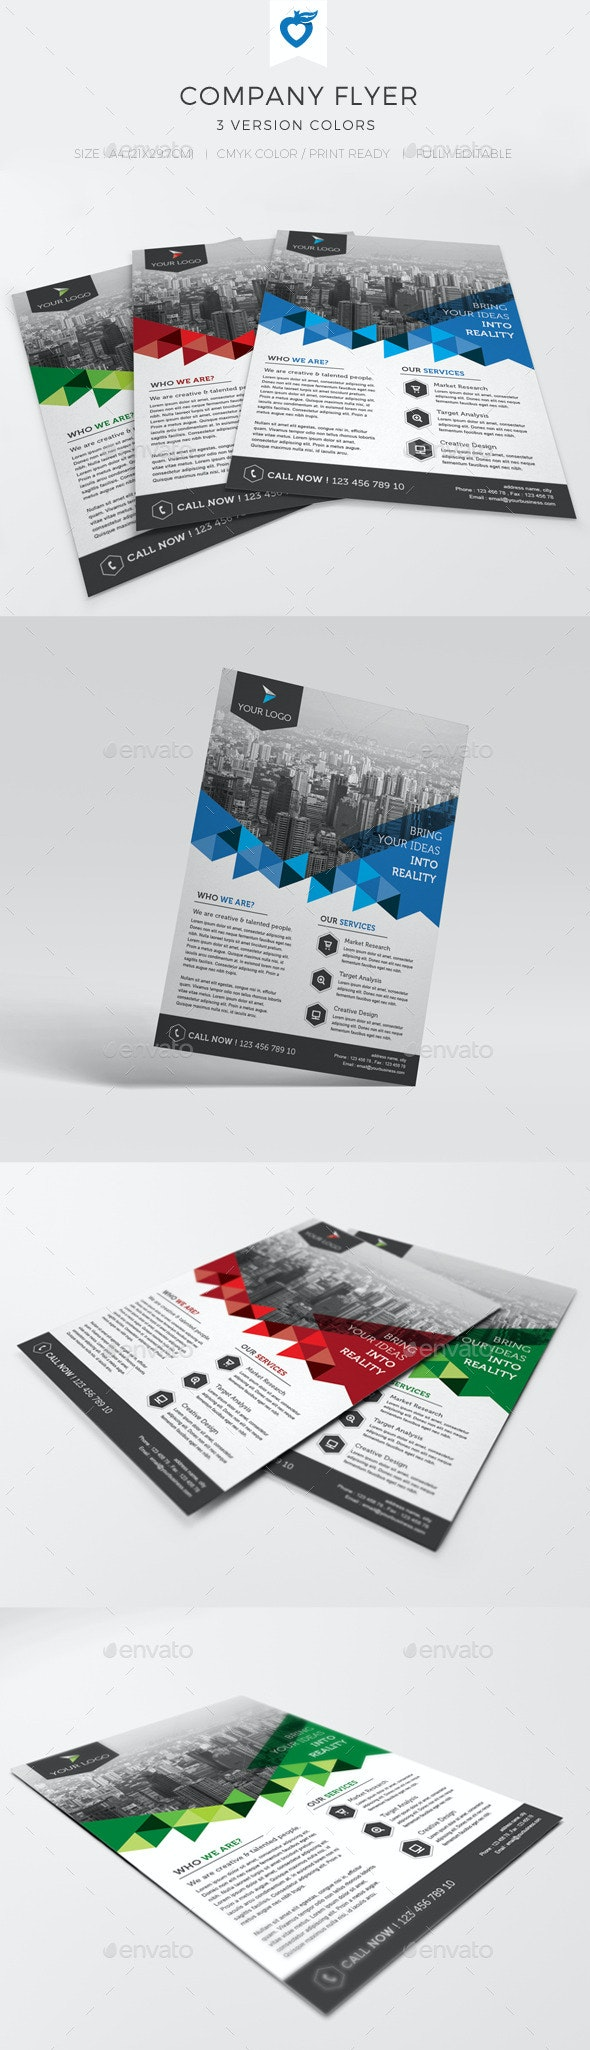 Company Flyer - Corporate Flyers